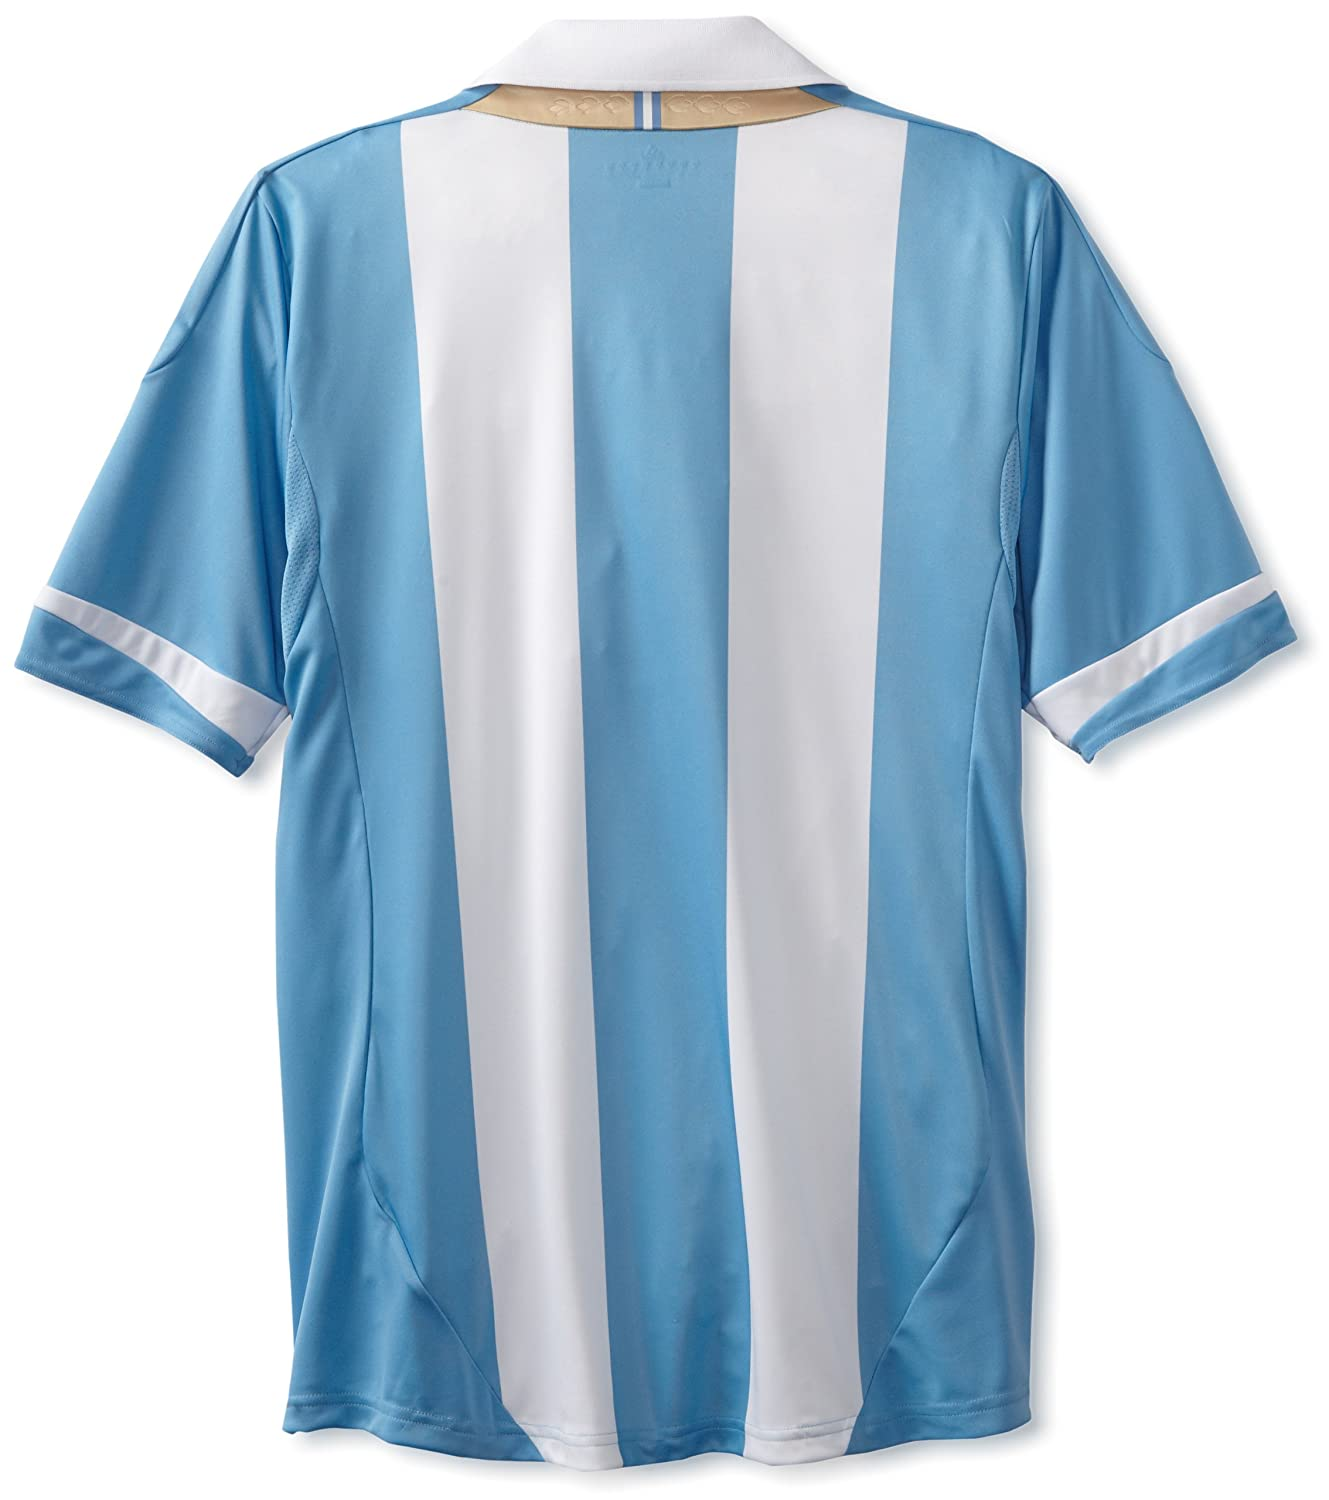 Amazon.com: Argentina Home Jersey 2011/12, Azul, L: Clothing